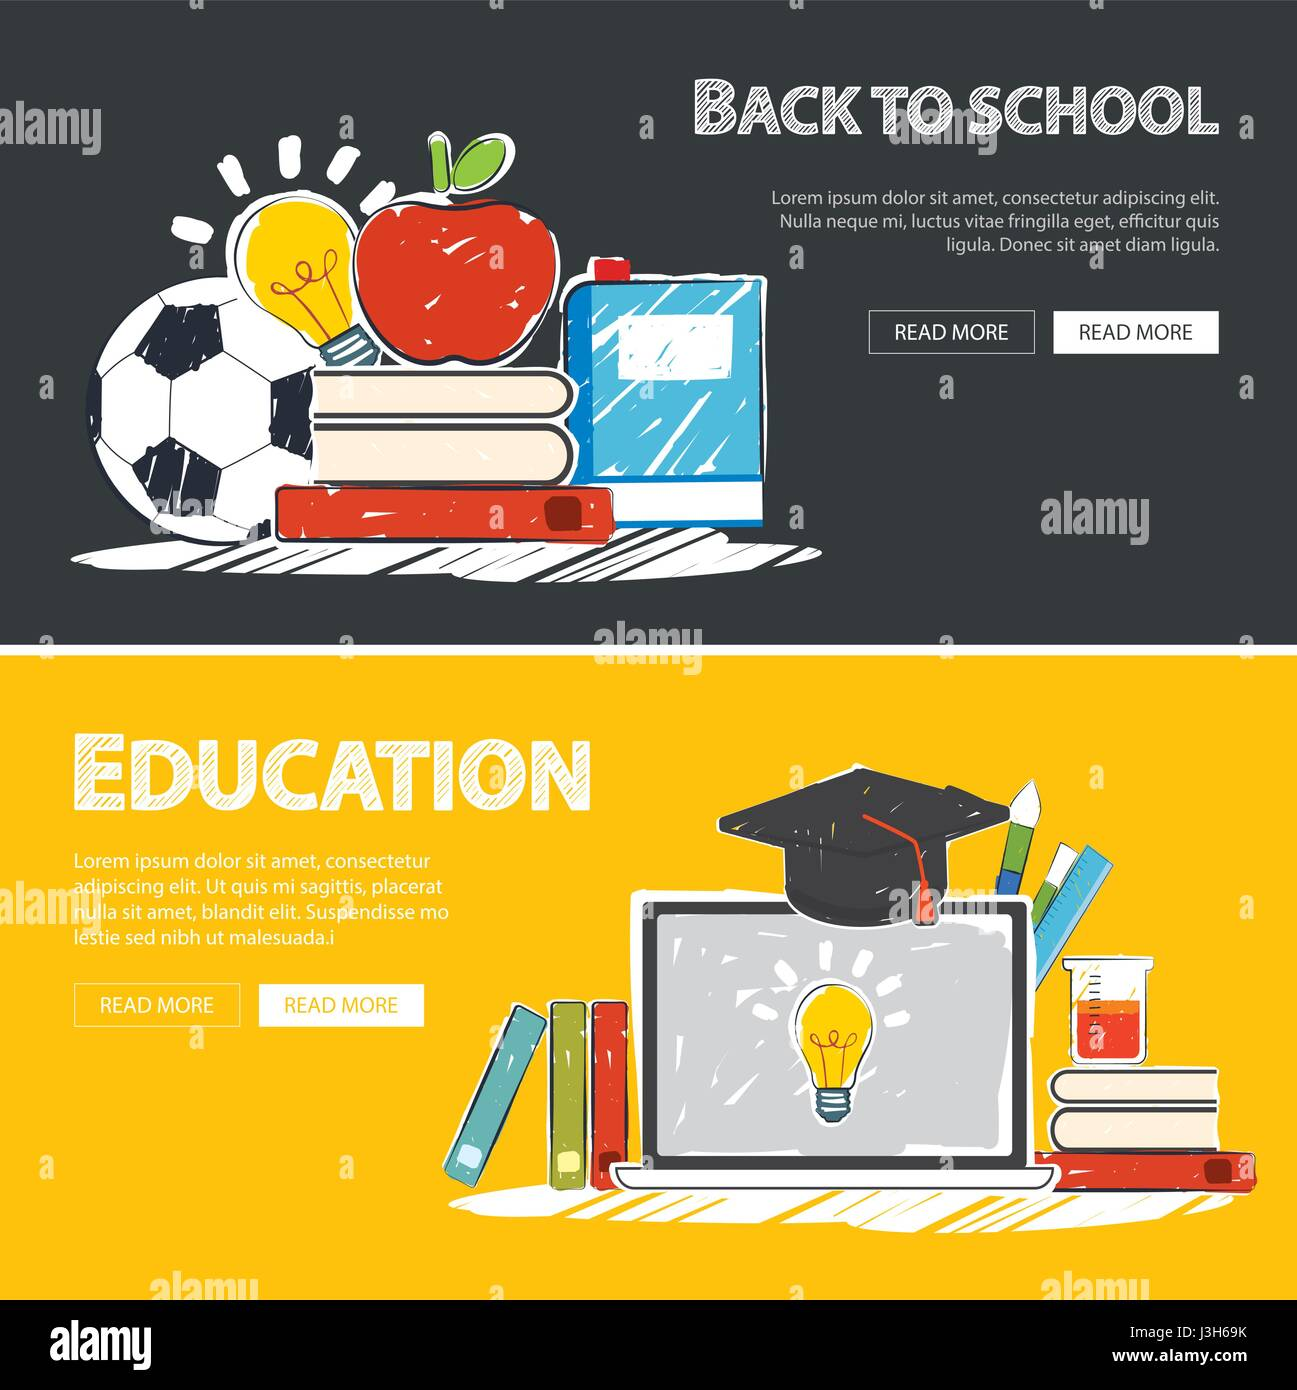 Education Banner And Back To School Background Template Stock Vector Image Art Alamy